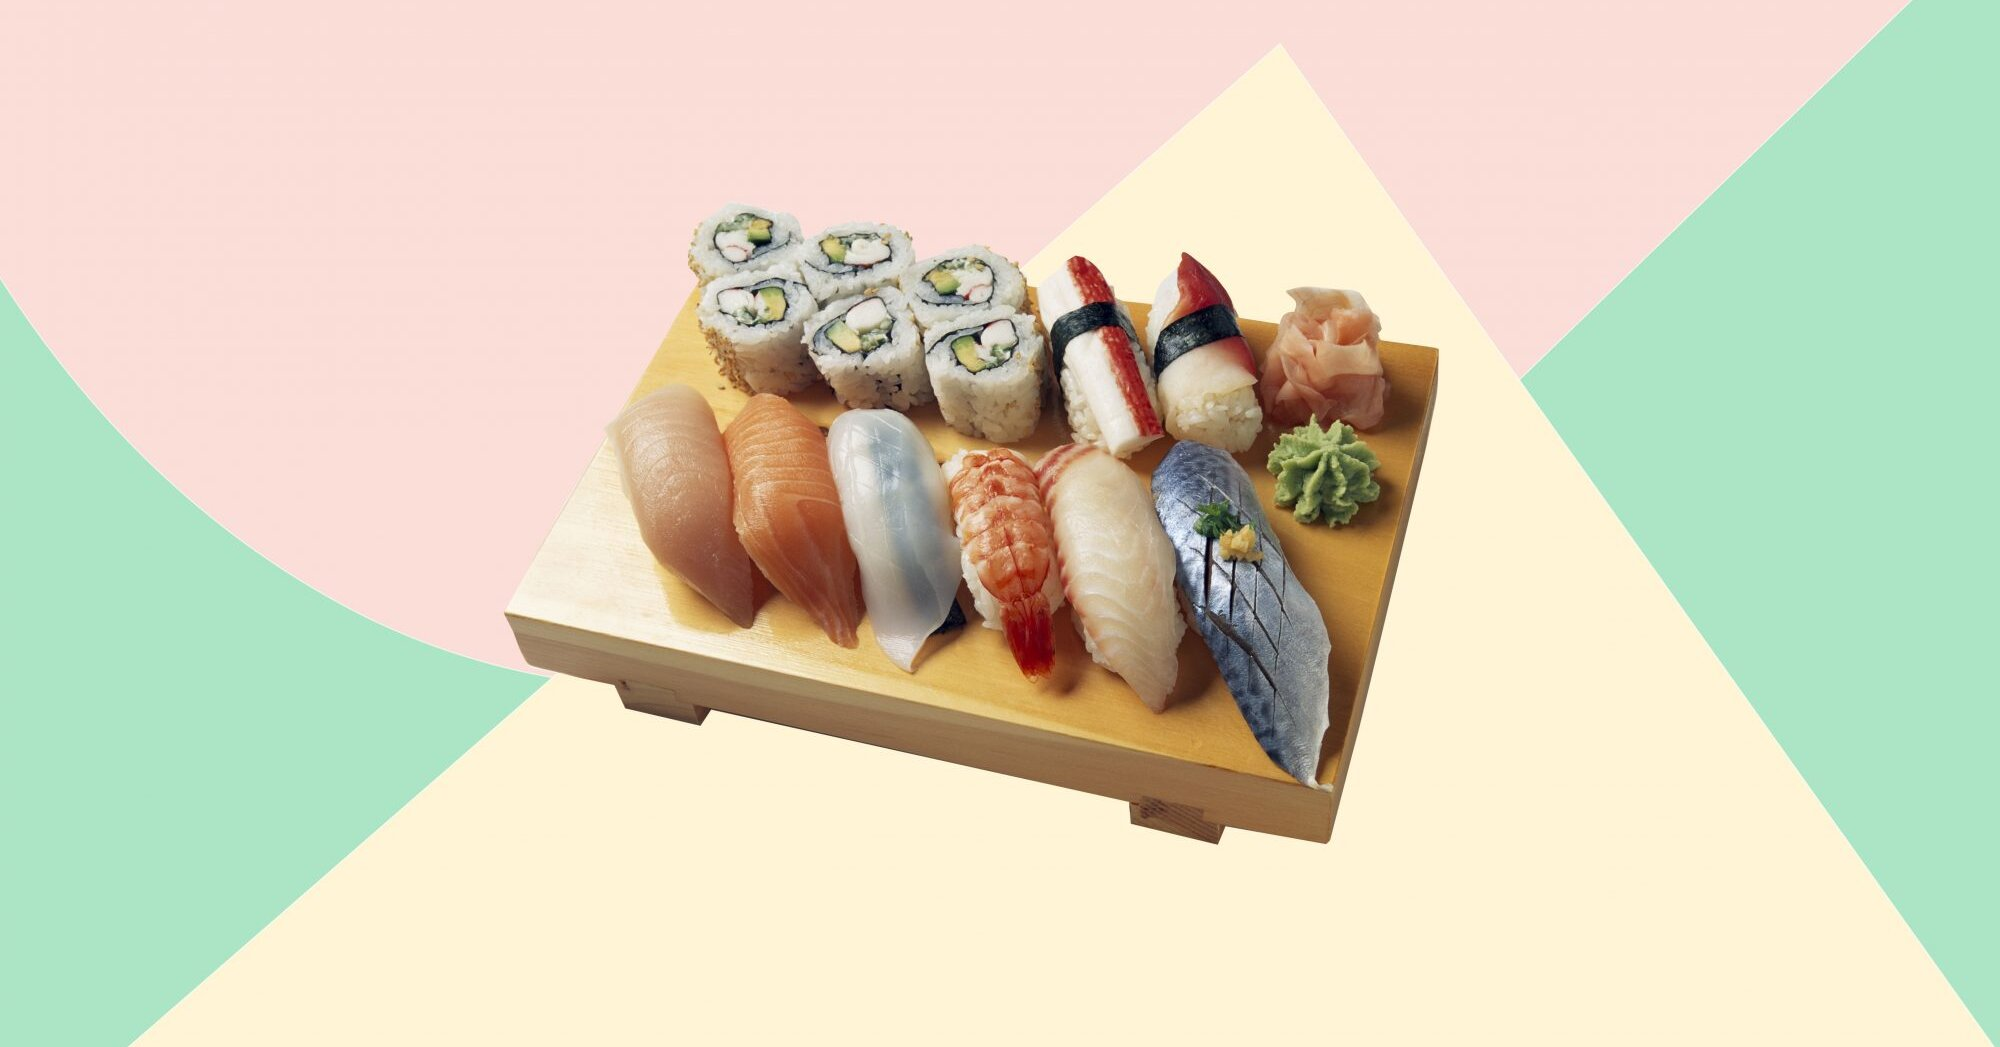 How to Eat Sushi: The Proper Way to Eat Sushi